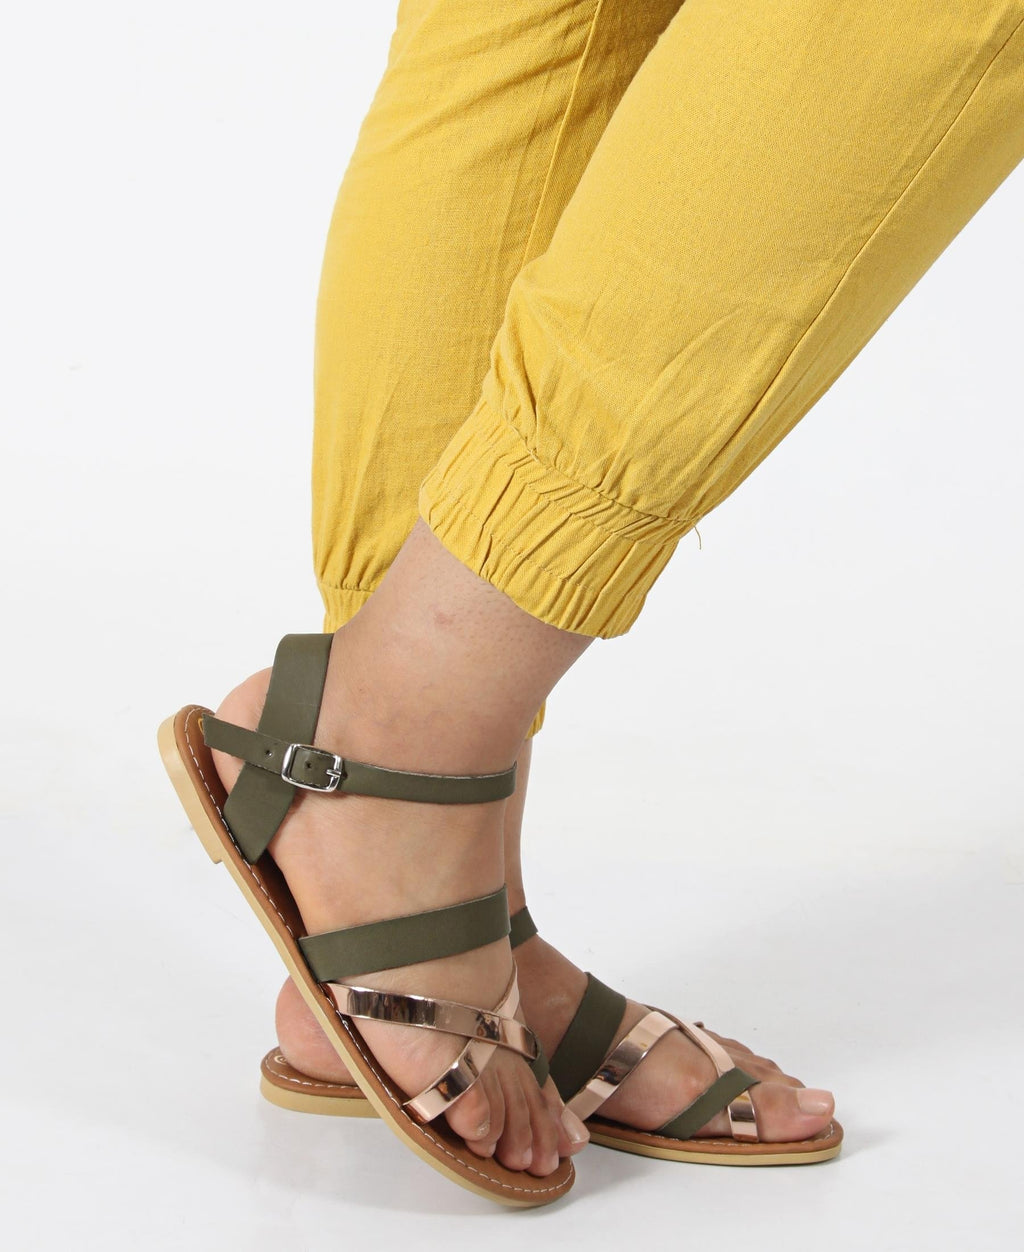 Buckle Strappy Flat Sandals - Olive